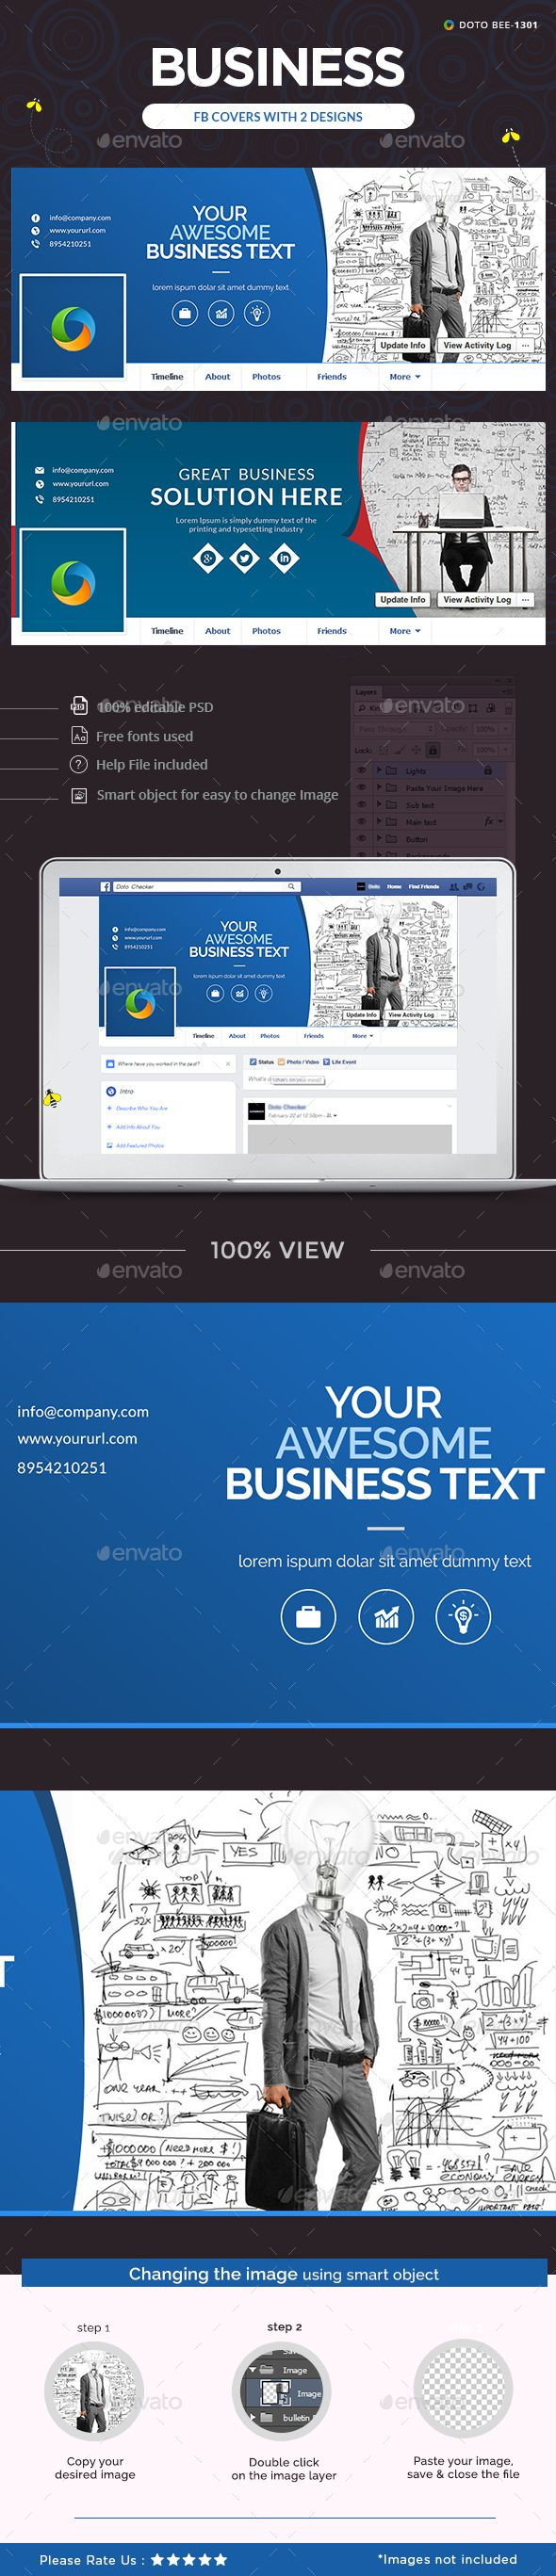 Business Facebook Cover   Cover template and Facebook cover template